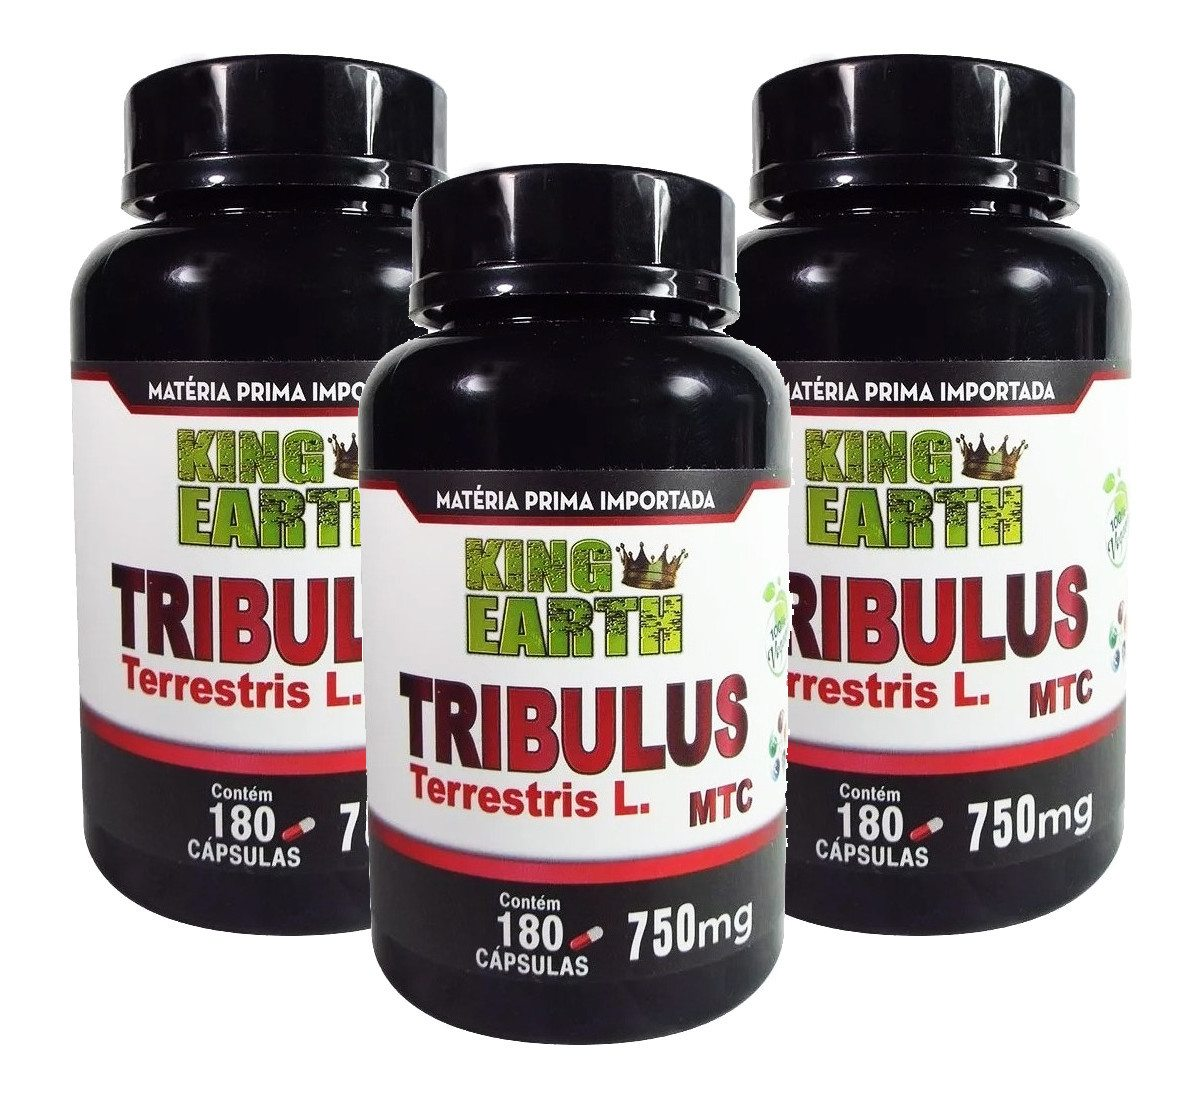 Kit C/ 3 Un Tribulus Terrestris L. 750mg 540 Cáps King Earth